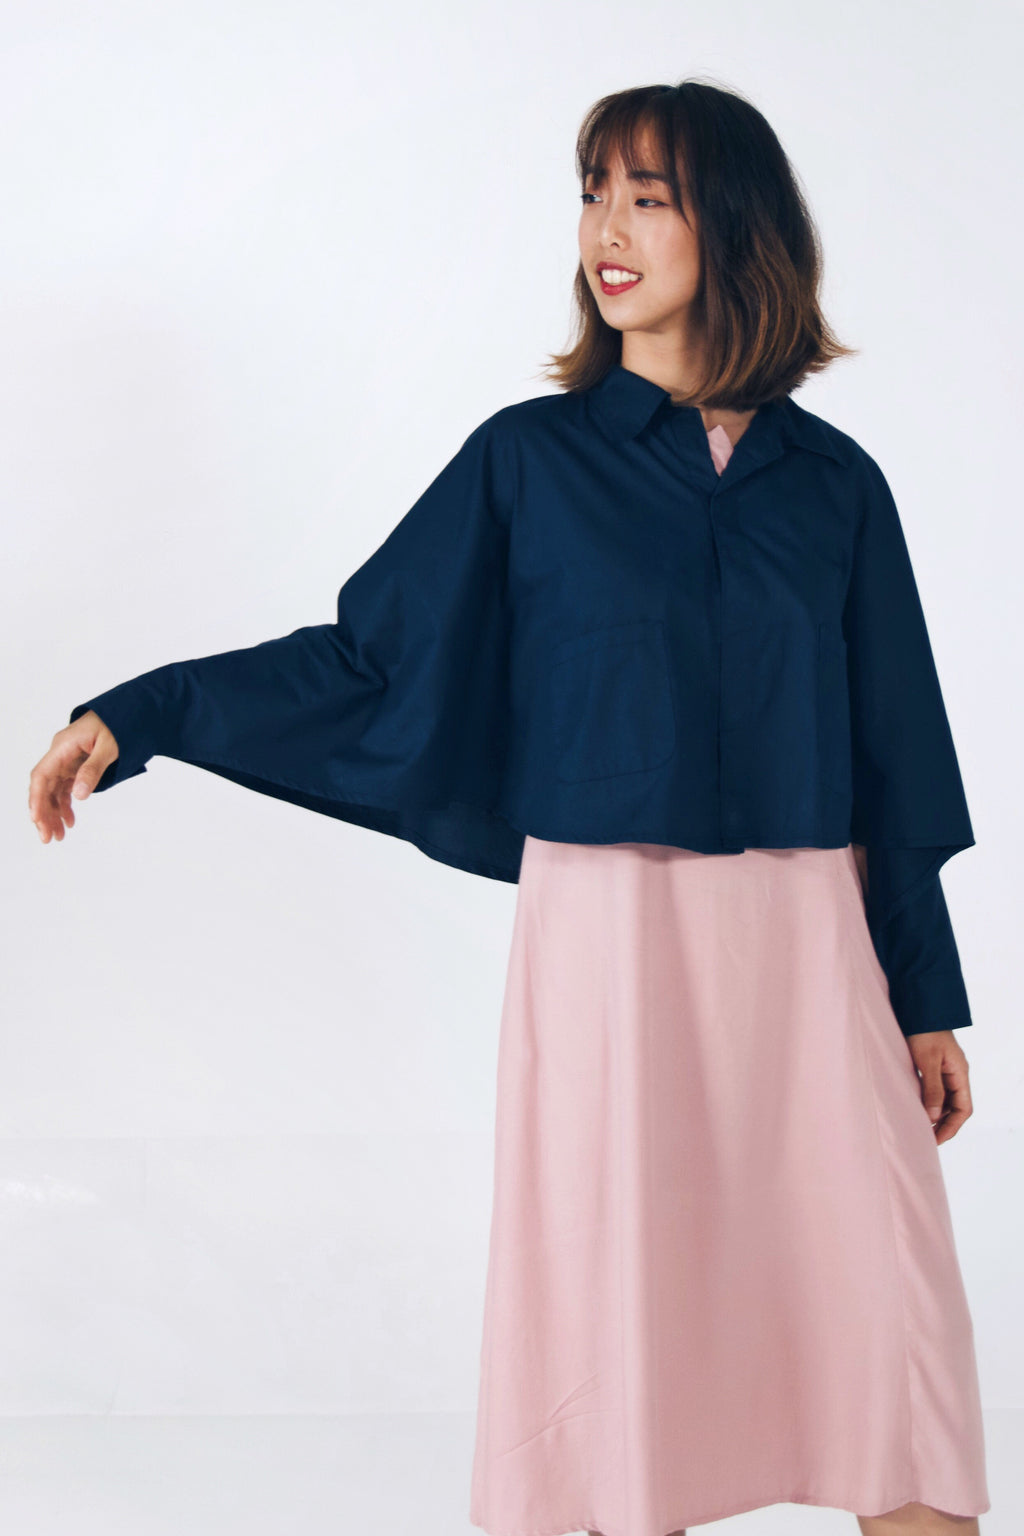 Cropped Cape – MagSnap